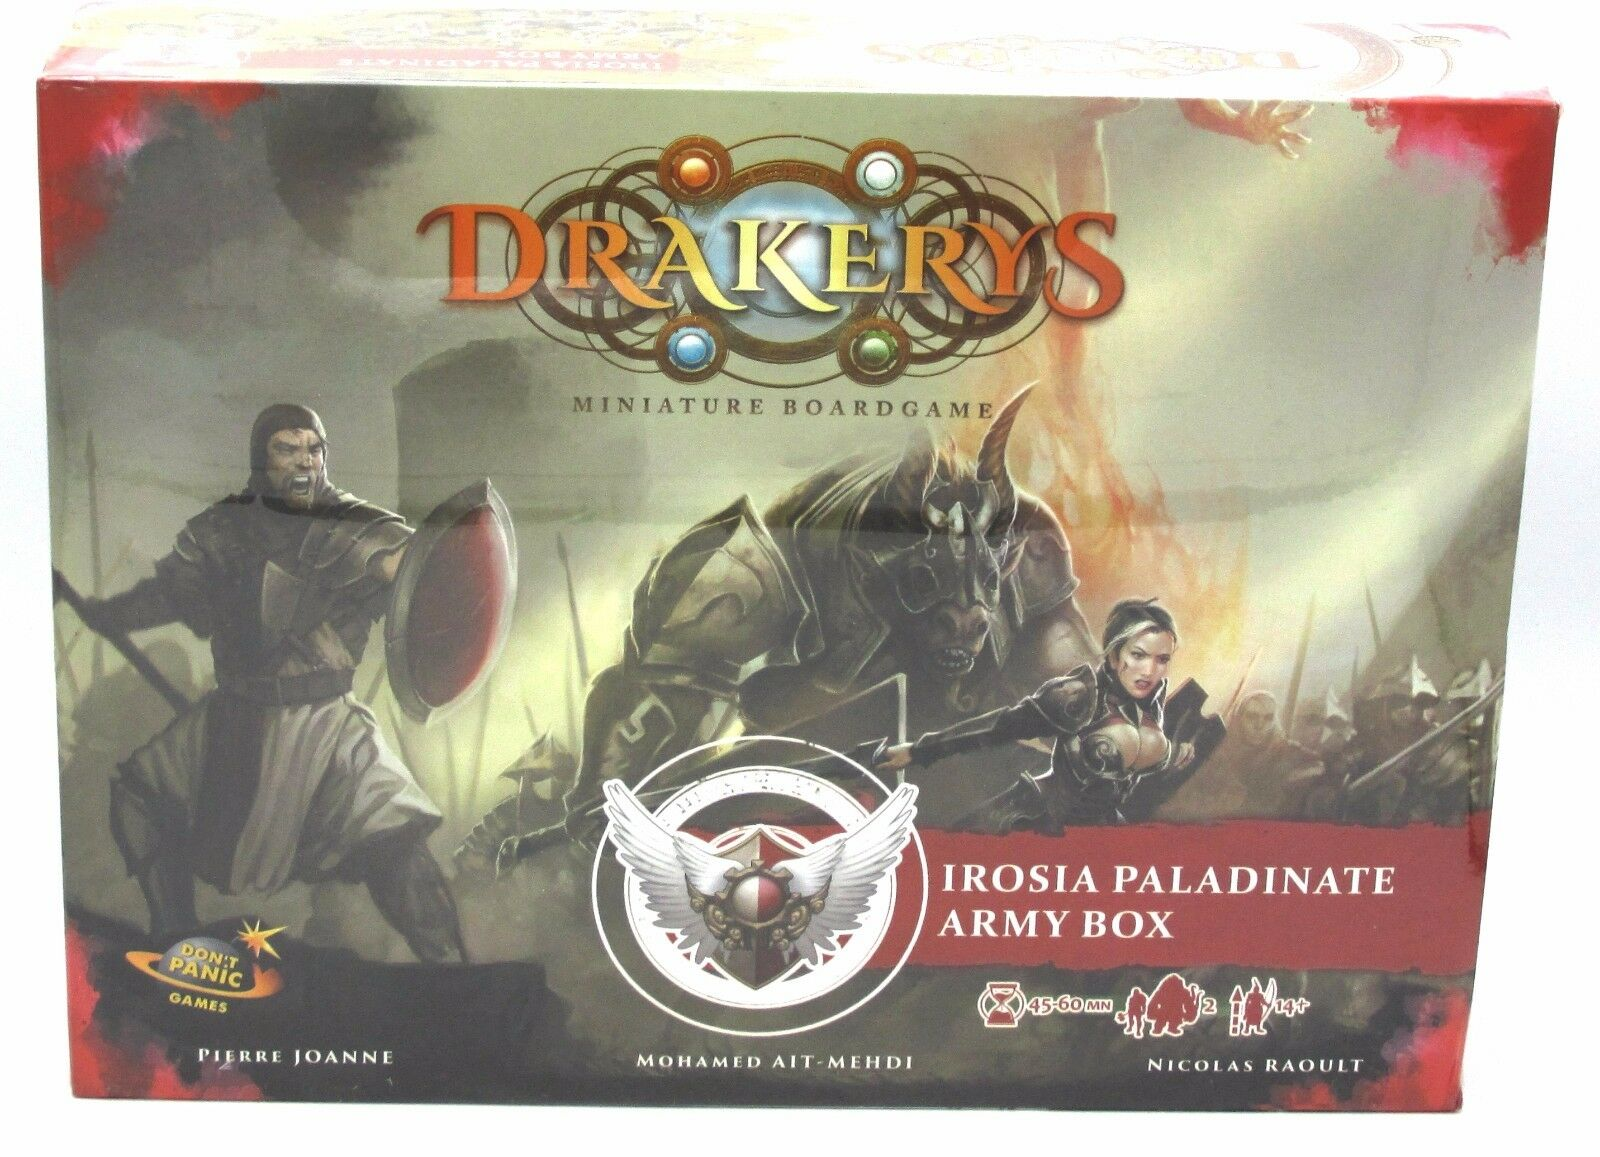 Drakerys IRAB2201 Irosia Paladinate Army Box Human Empire Infantry Hero Minotaur